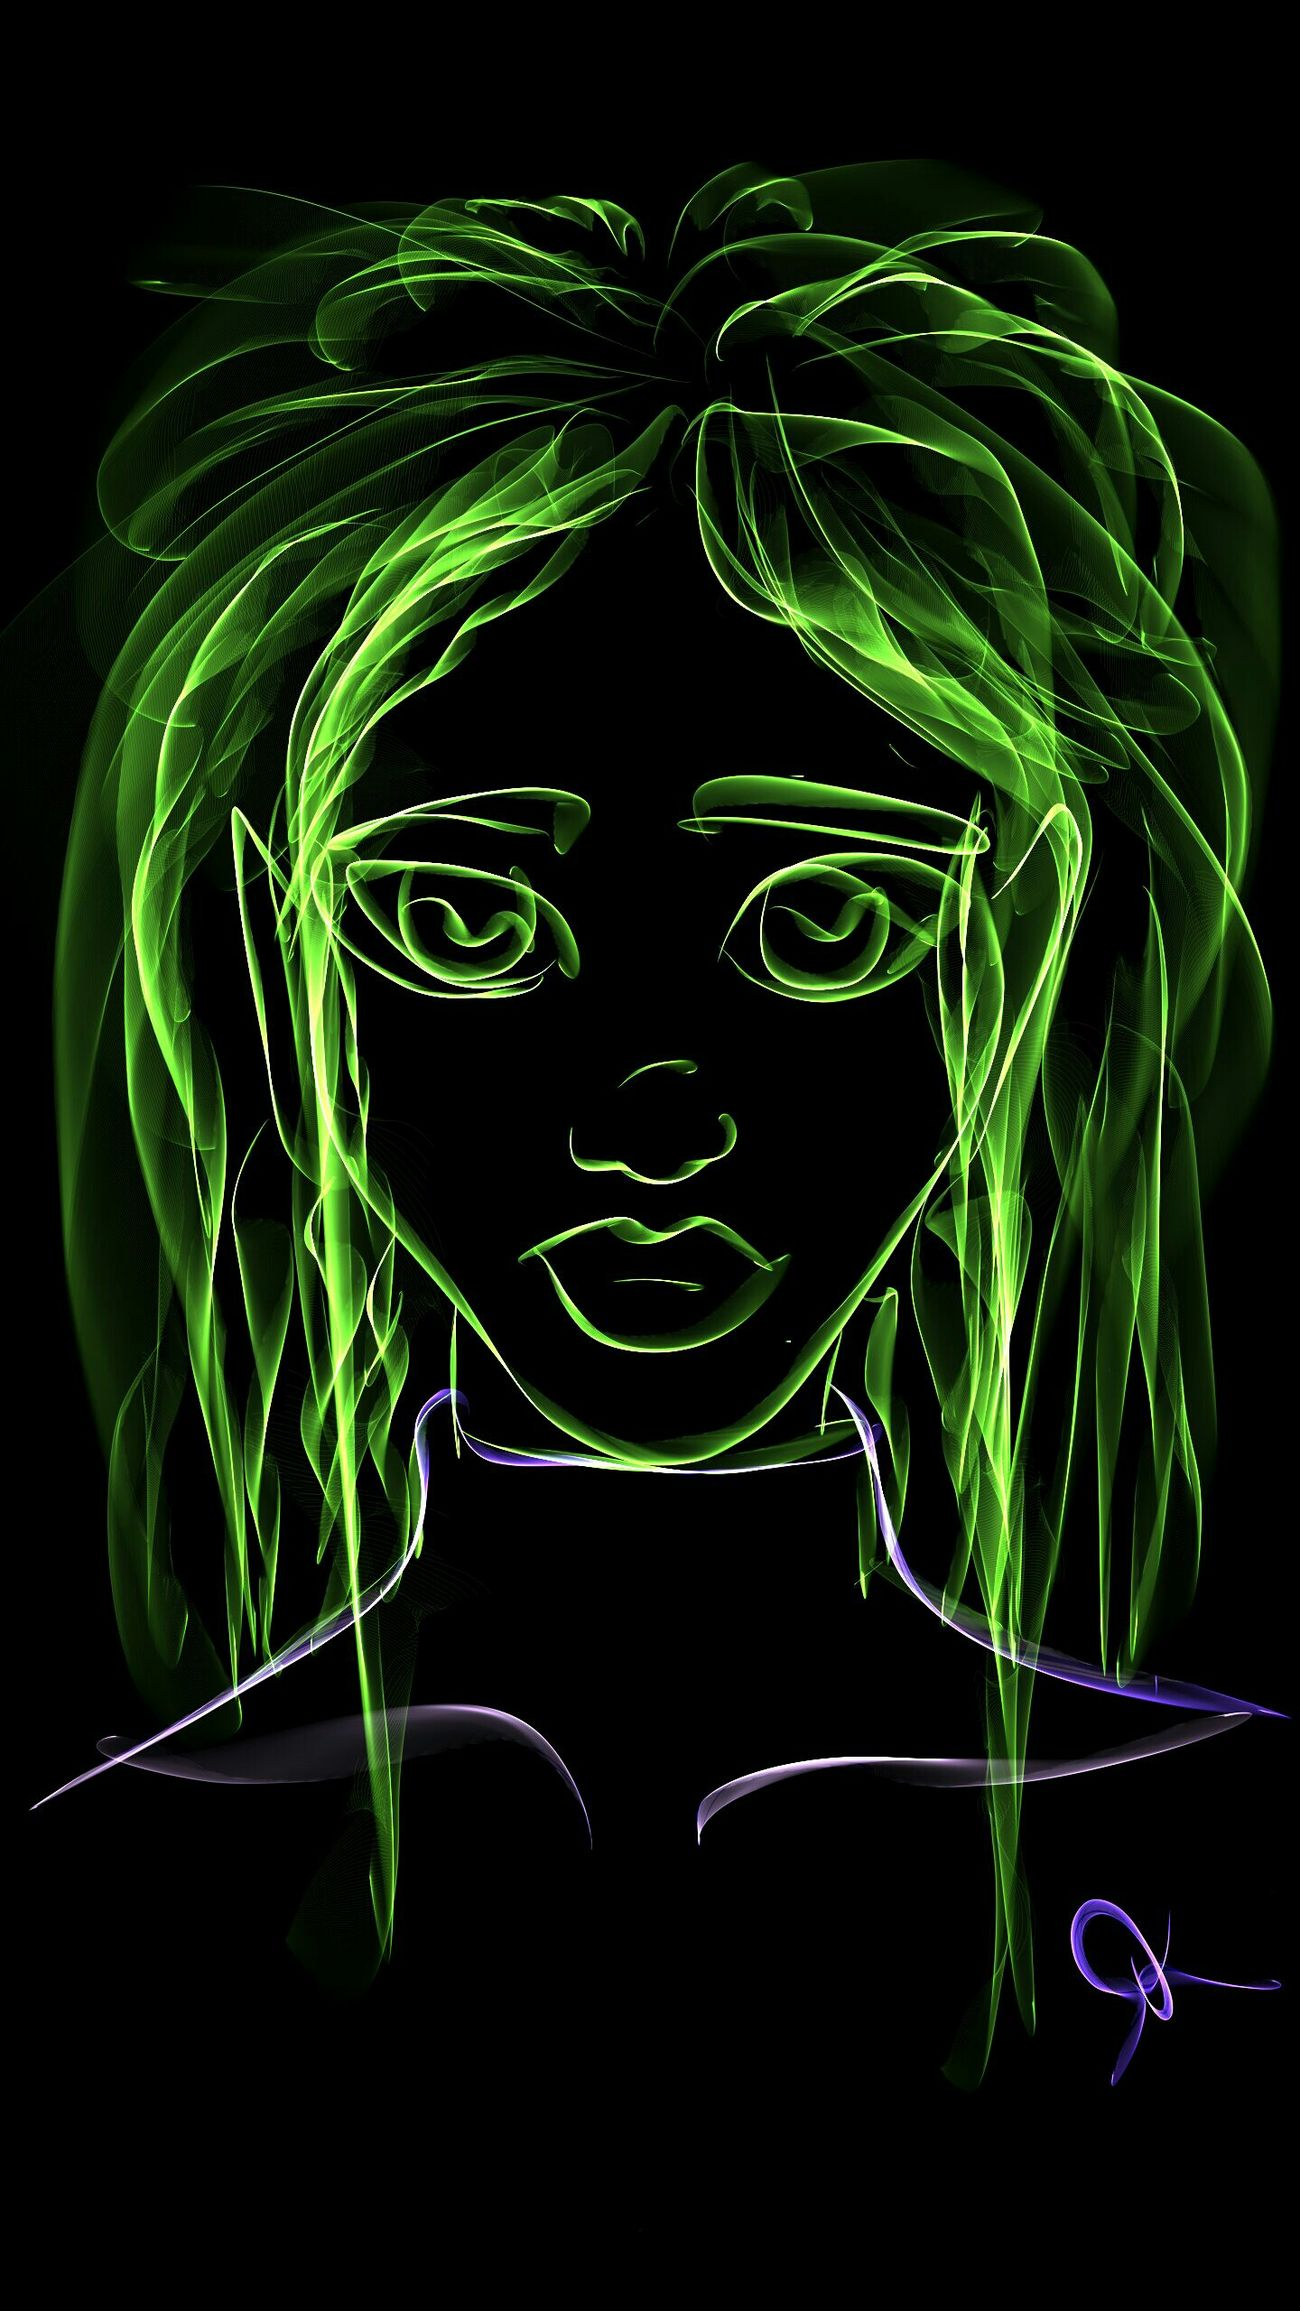 I was messing around with Silk Paints app on my Note 4 today. Drawing Art, Drawing, Creativity Digital Art Note4 Galaxynote4 Silkpaints Neon Woman